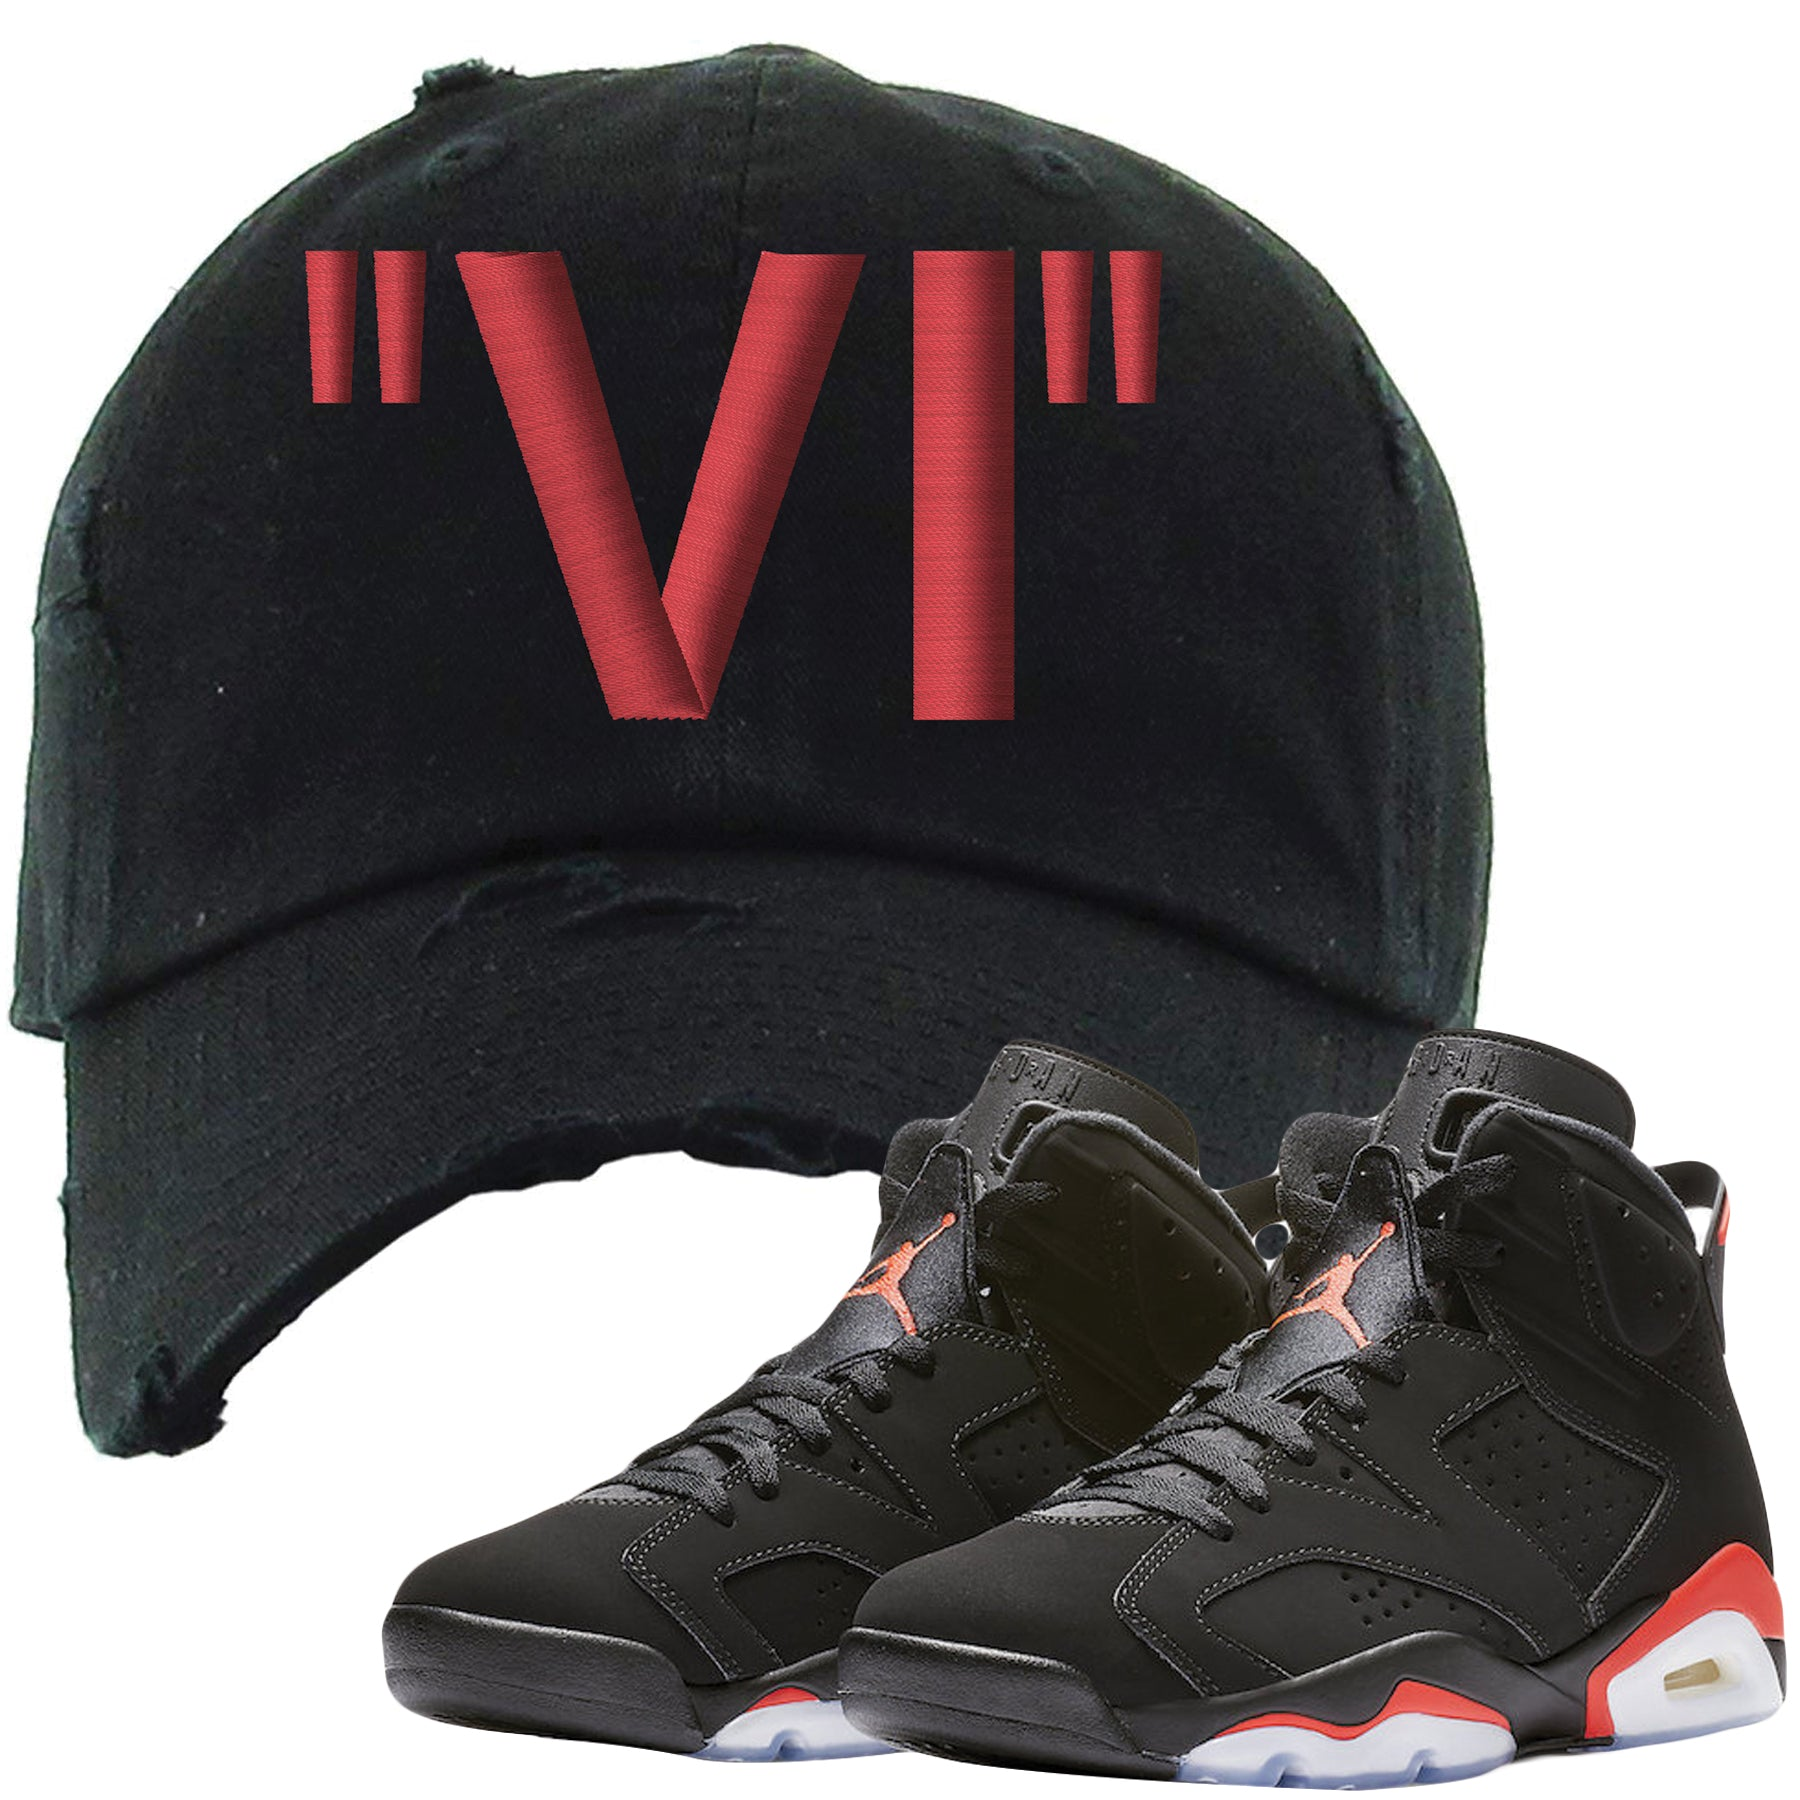 f17b8d8f The Jordan 6 Infrared Distressed Dad Hat is custom designed to perfectly  match the retro Jordan